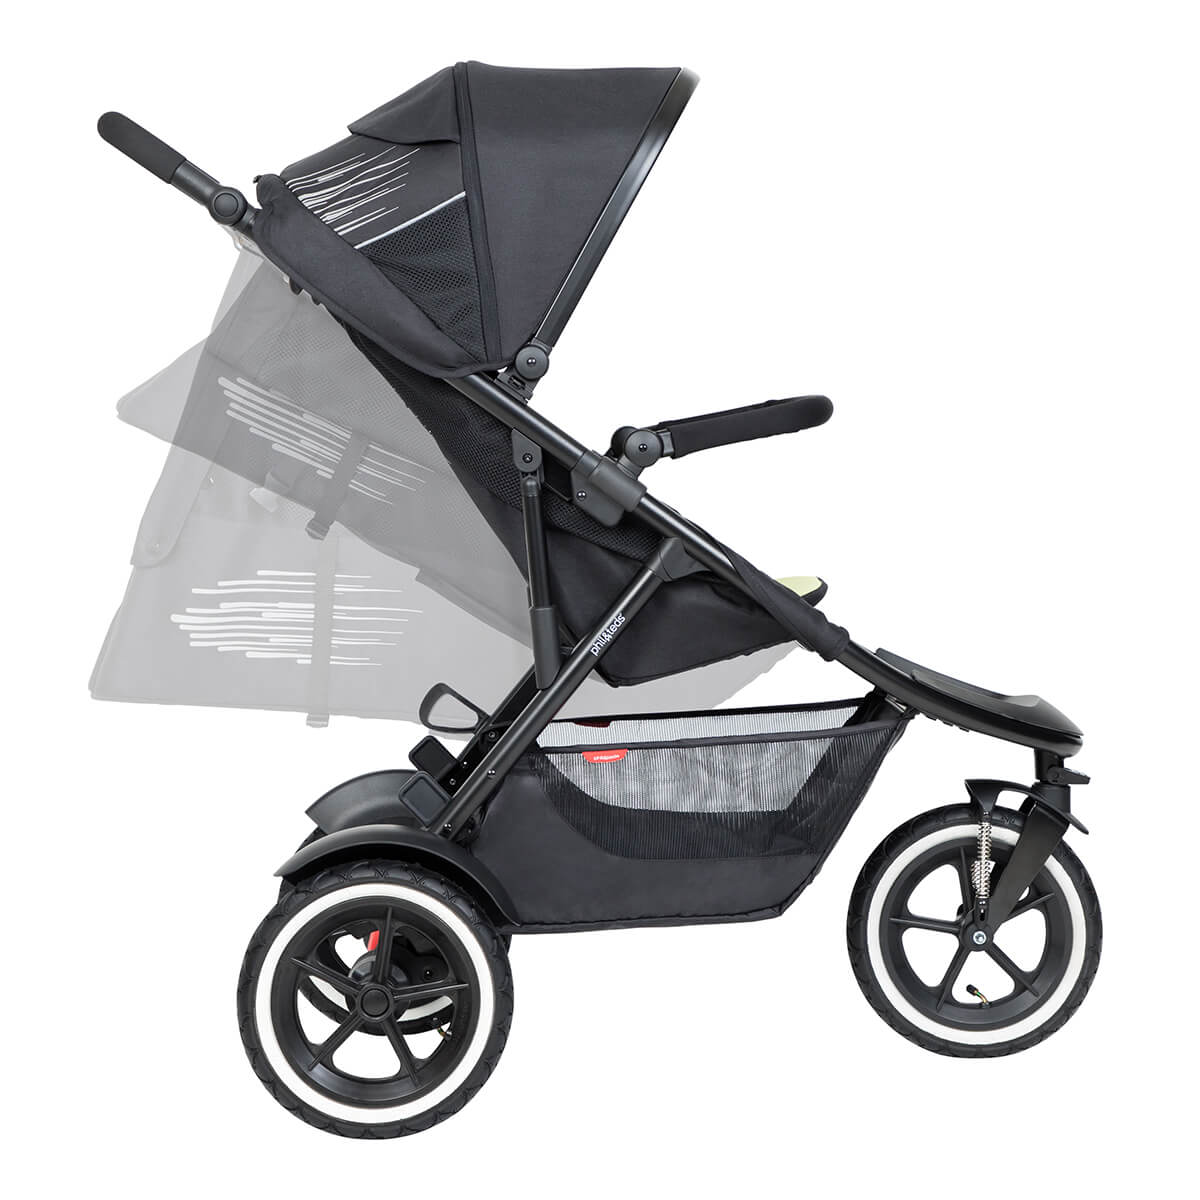 https://cdn.accentuate.io/4513462255712/19440099492024/philteds-sport-buggy-can-recline-in-multiple-angles-including-full-recline-for-newborn-baby-v1626486498125.jpg?1200x1200